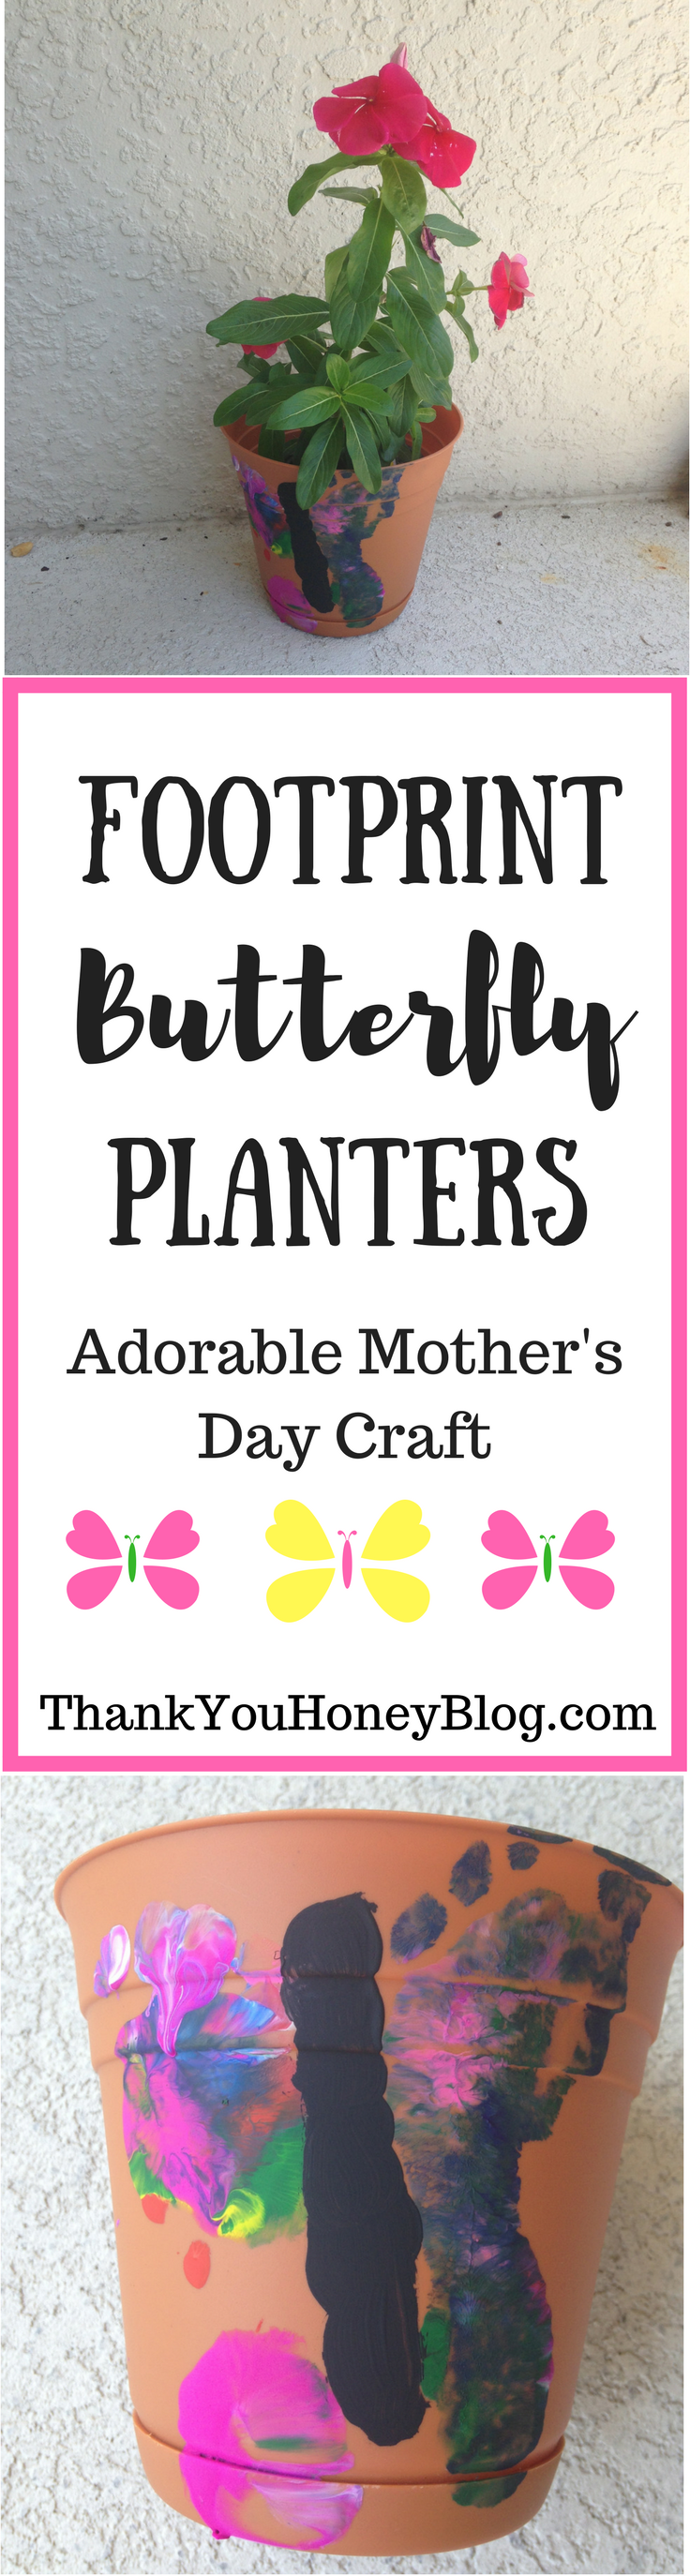 Footprint Butterfly Planters